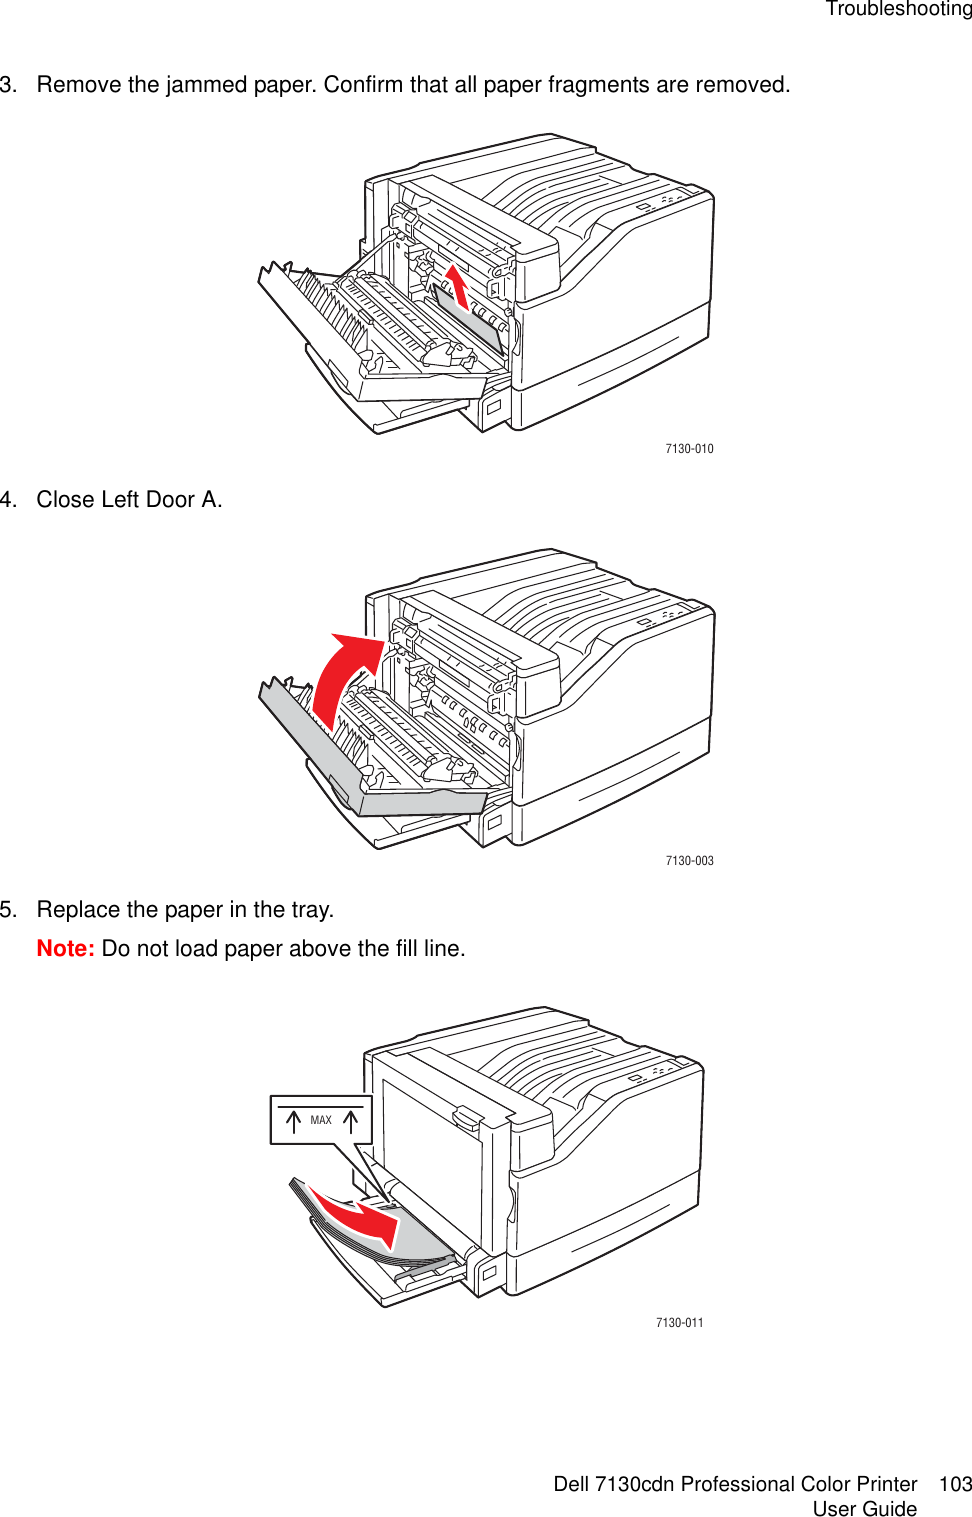 Dell 7130Cdn Color Laser Printer Users Manual User's Guide